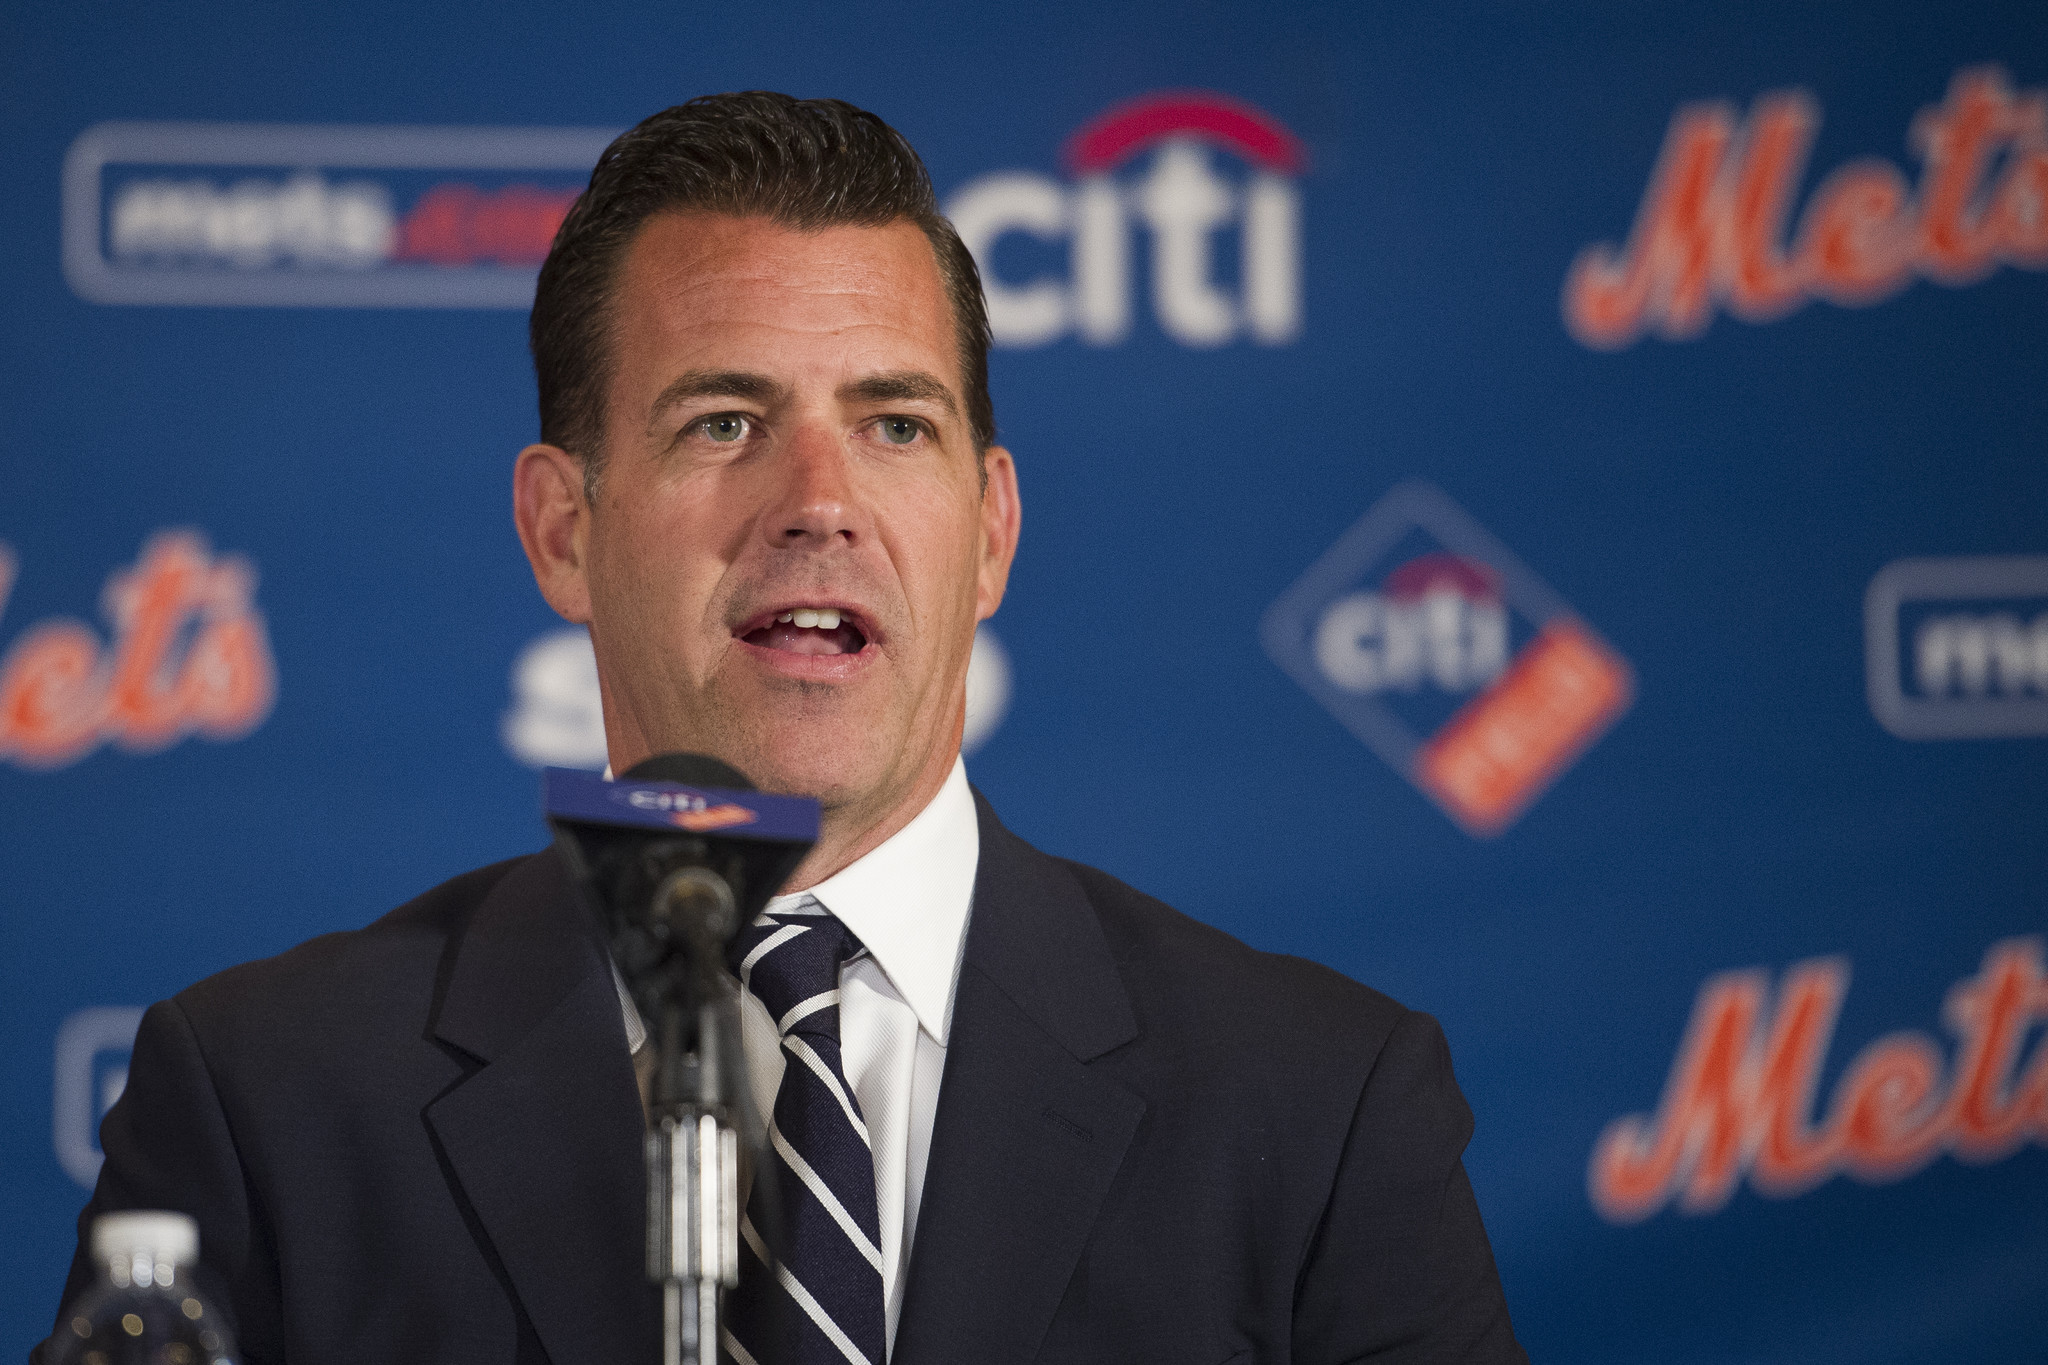 What's next for Mets? New manager search could include names like Joe Girardi, Buck Showalter and even Carlos Beltran